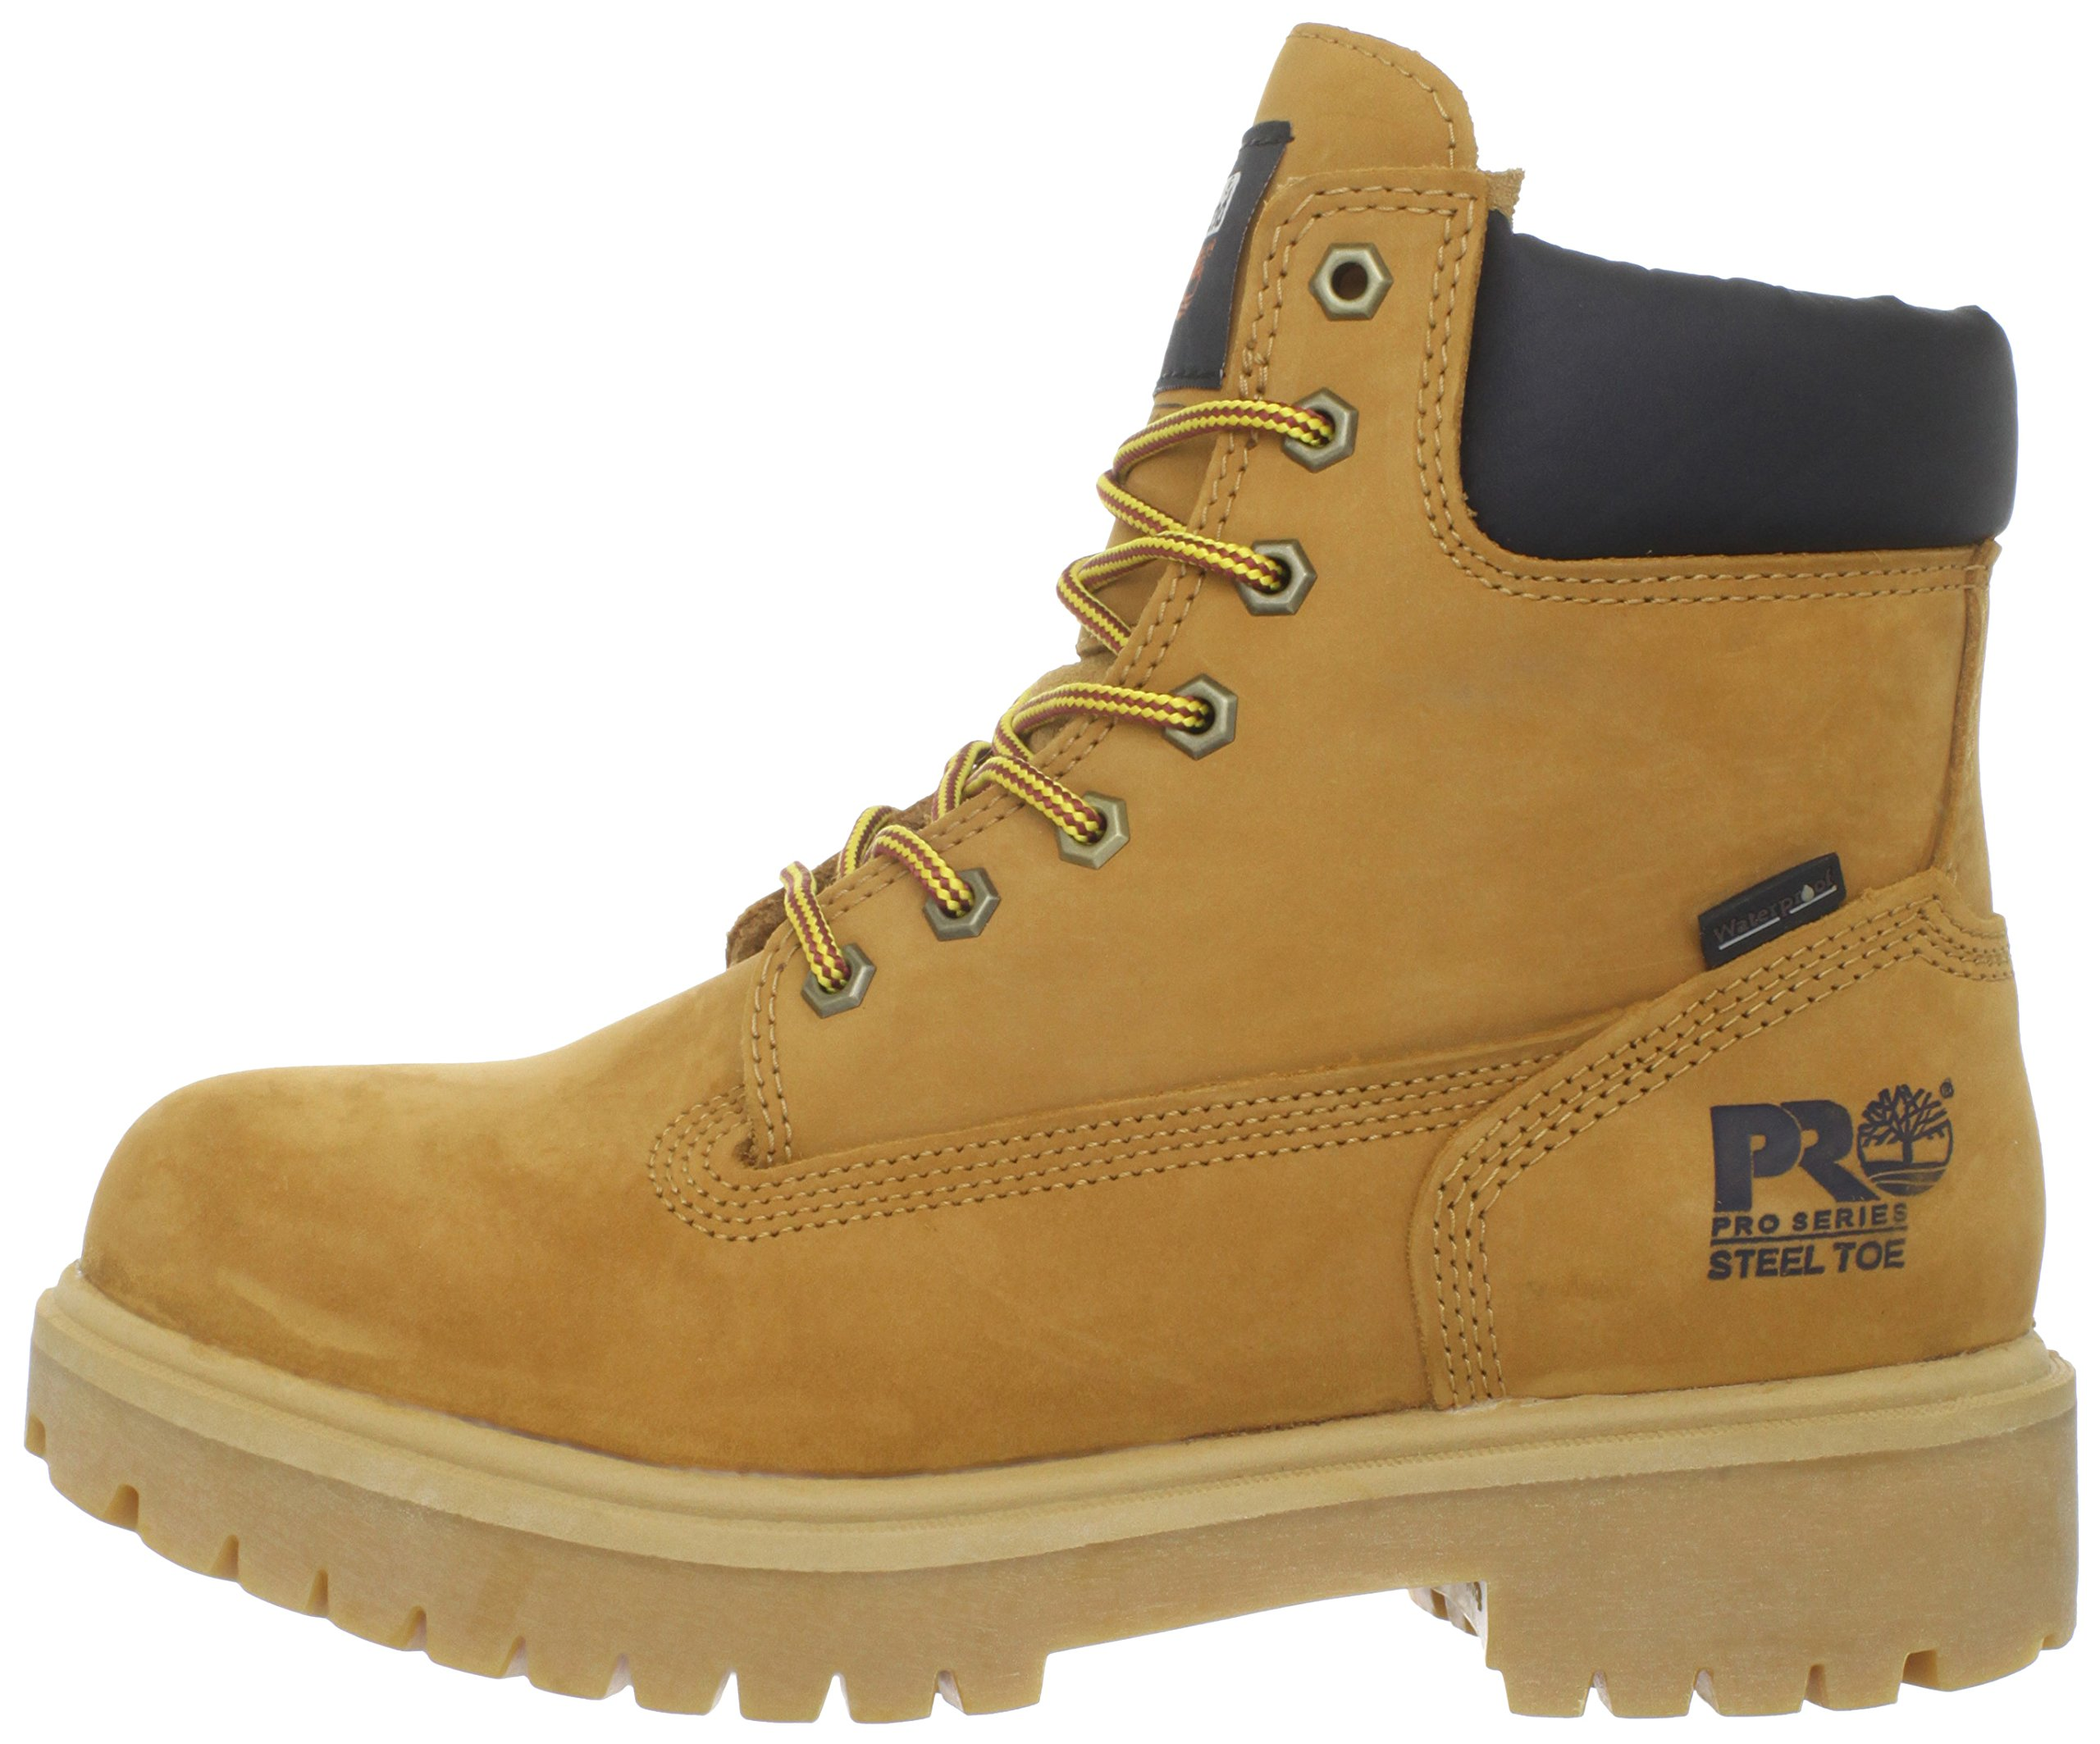 Timberland PRO Men's 65016 Direct Attach 6'' Steel Toe Boot,Yellow,9.5 W by Timberland PRO (Image #5)